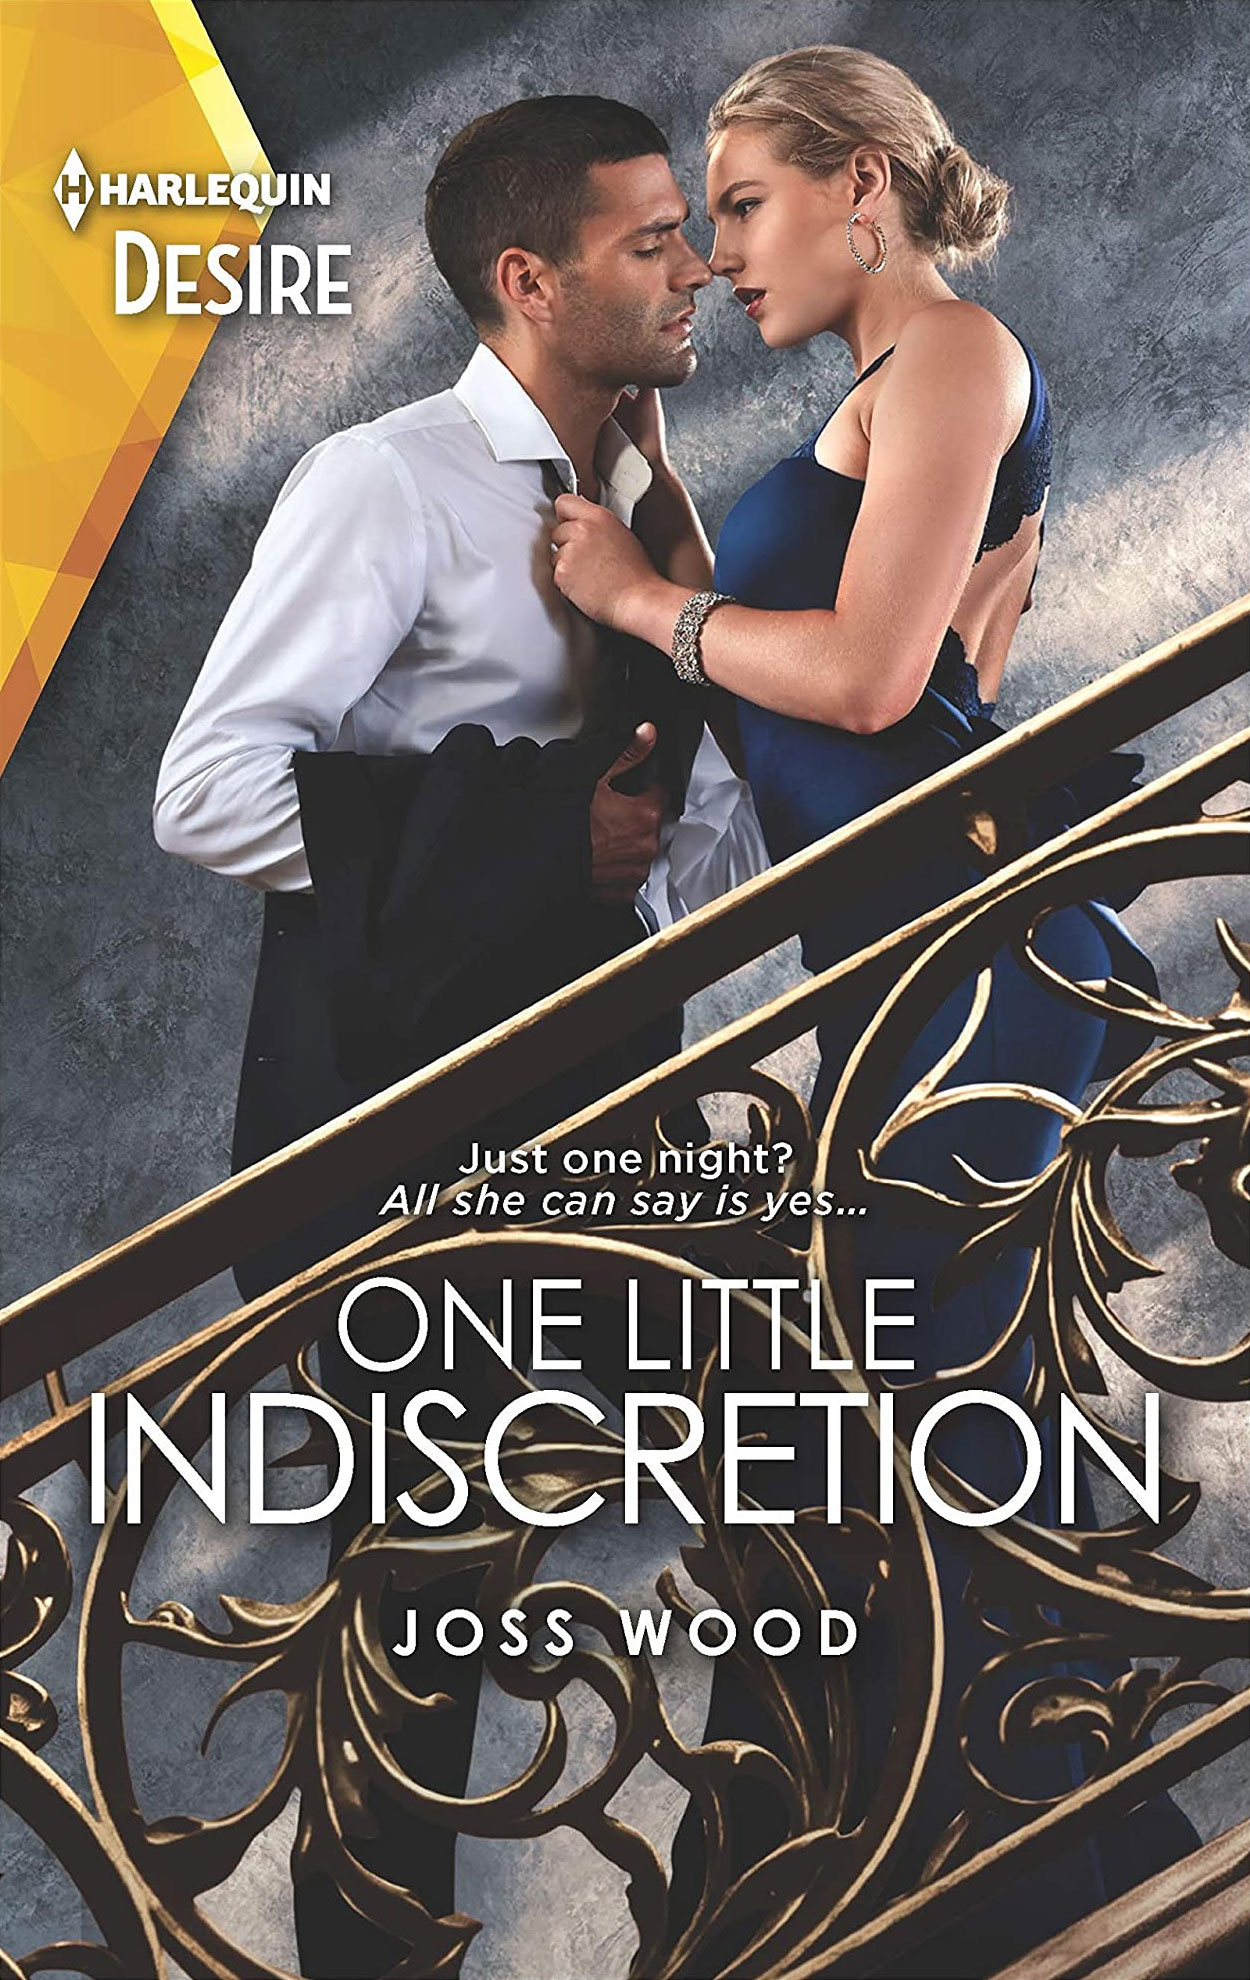 One Little Indiscretion by Joss Wood